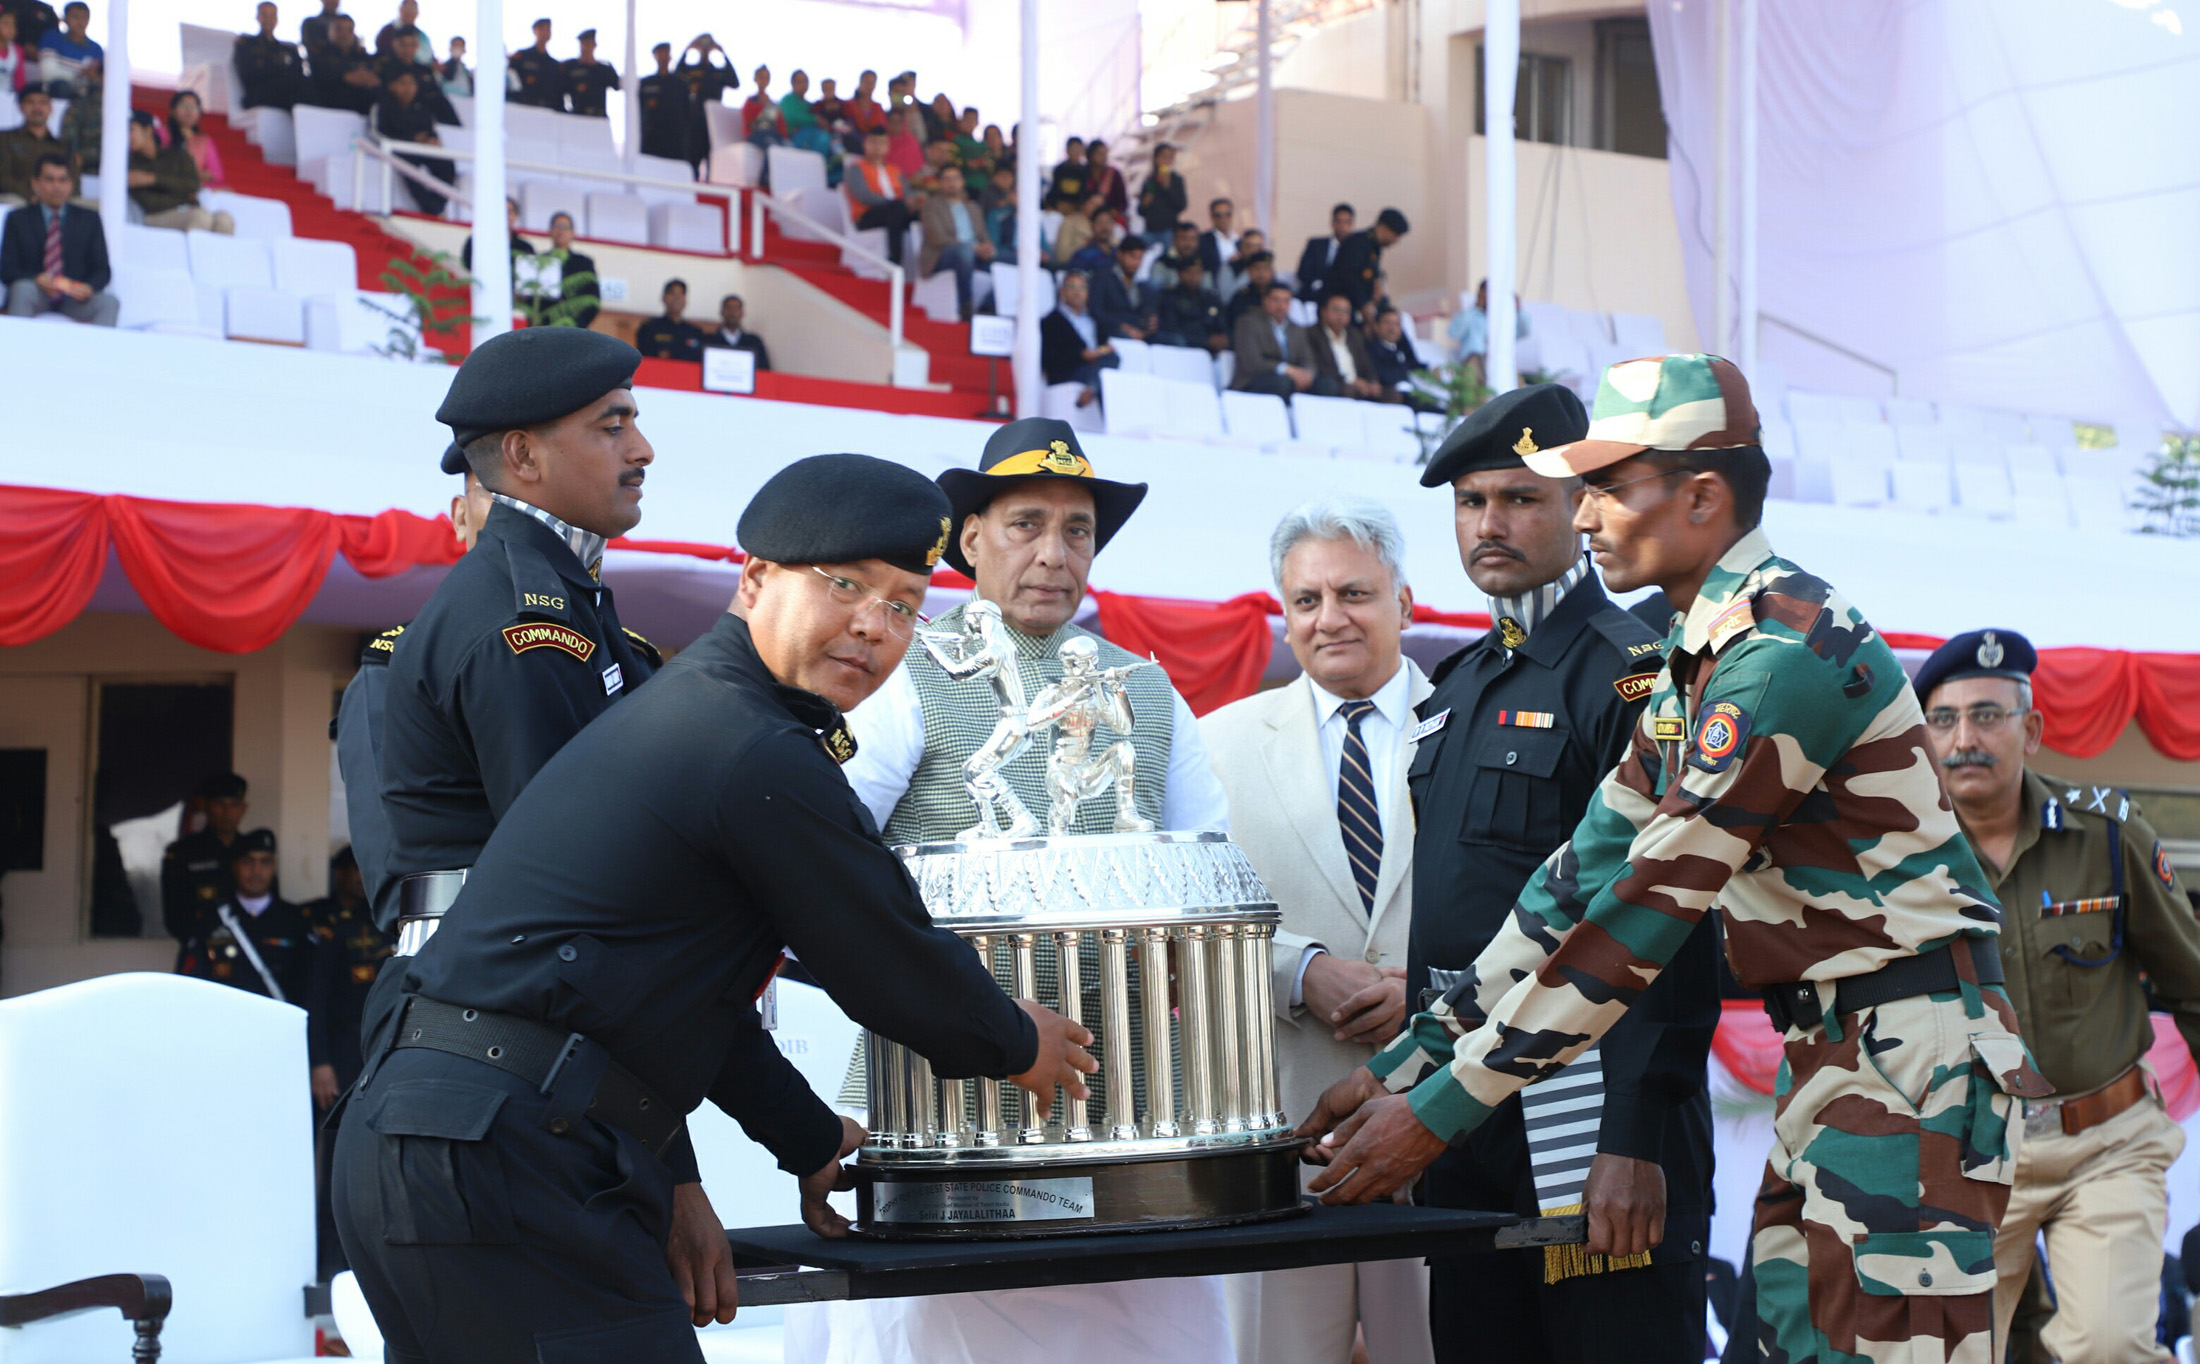 The Union Home Minister, Shri Rajnath Singh presenting the medals and trophies, during the Closing Ceremony of the 8th All India Police Commando Competition, at Manesar, Gurugram, in Haryana on January 20, 2018.  The Director, IB, Shri Rajiv Jain is also seen.